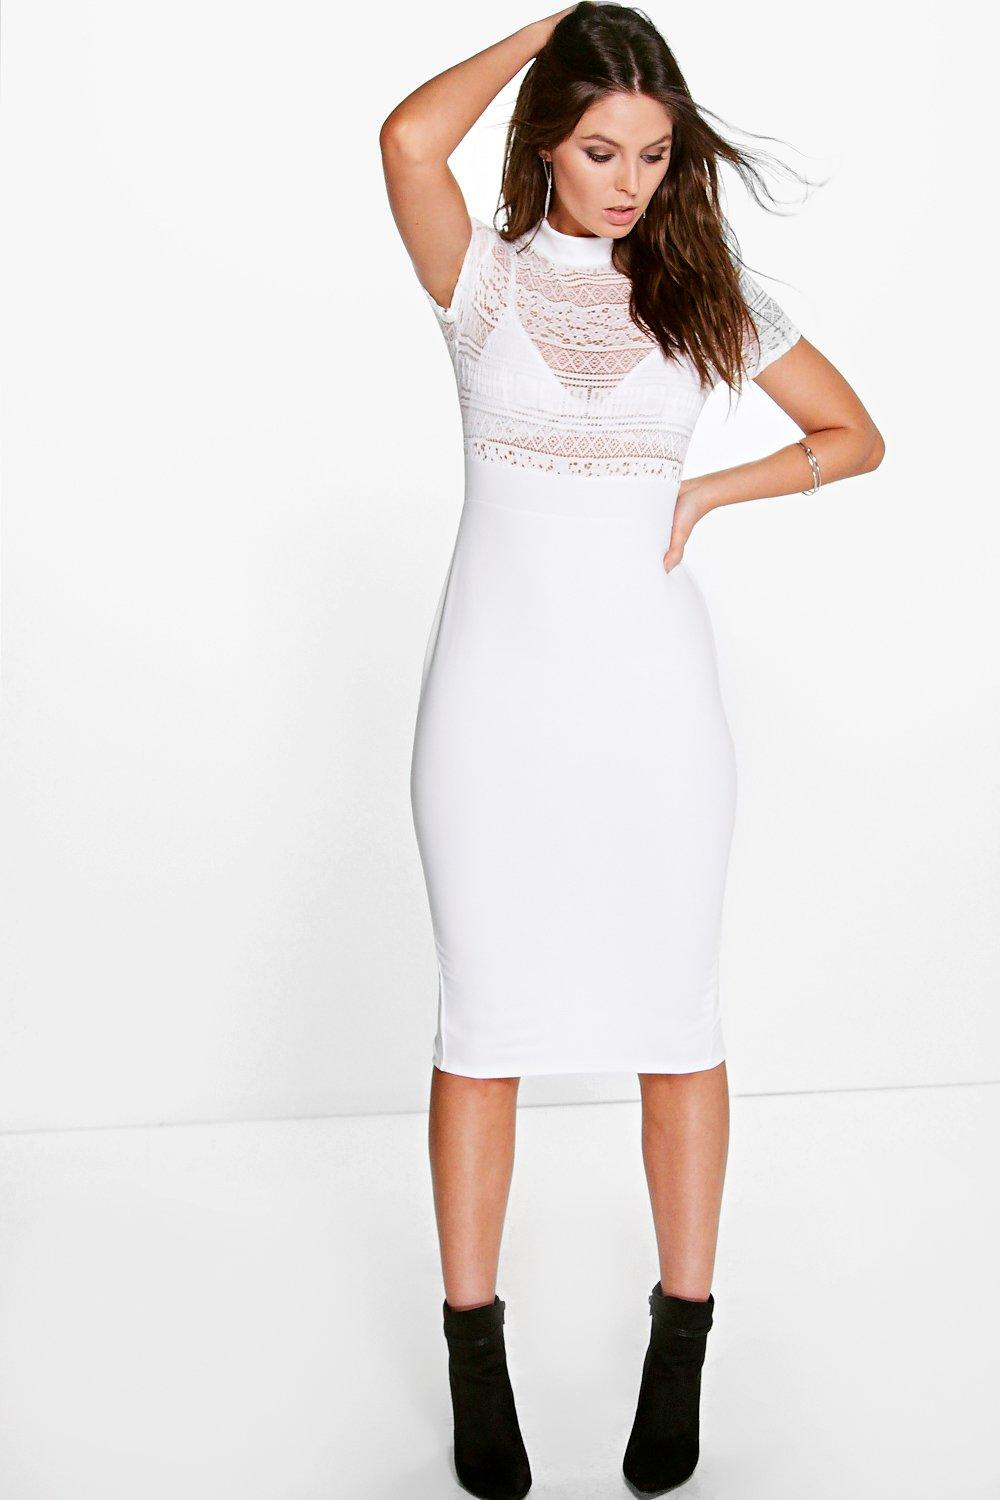 Fifii High Neck Lace Top Short Sleeve Midi Dress